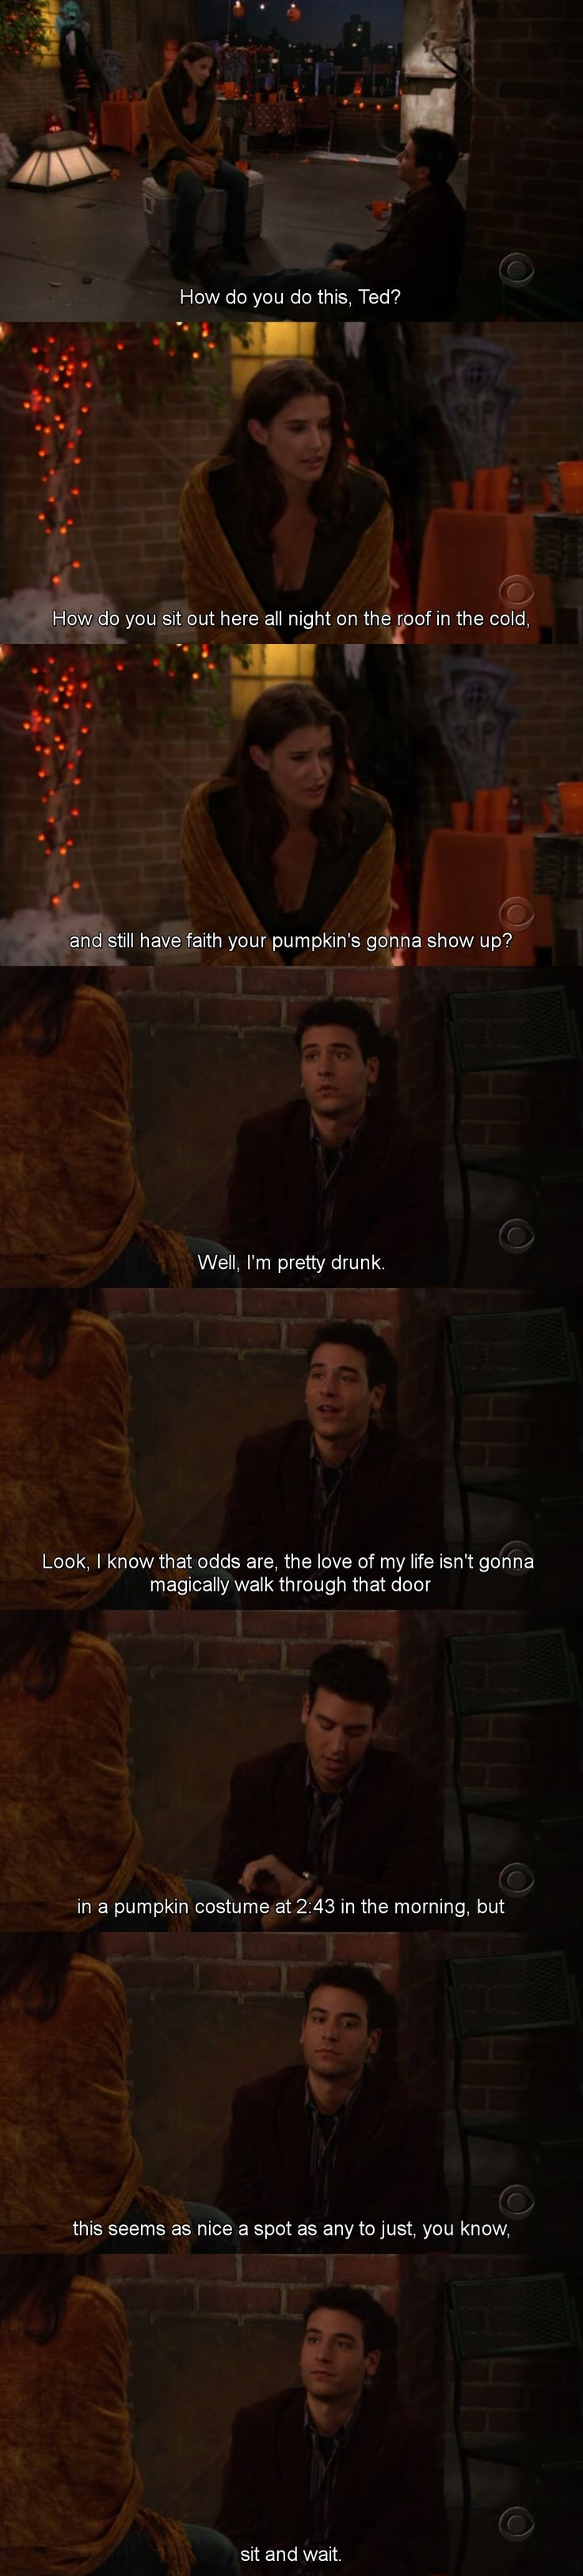 "S1E6 Slutty Pumpkin | ""This seems as nice a spot as any to just, you know, sit and wait."" -Ted Mosby"